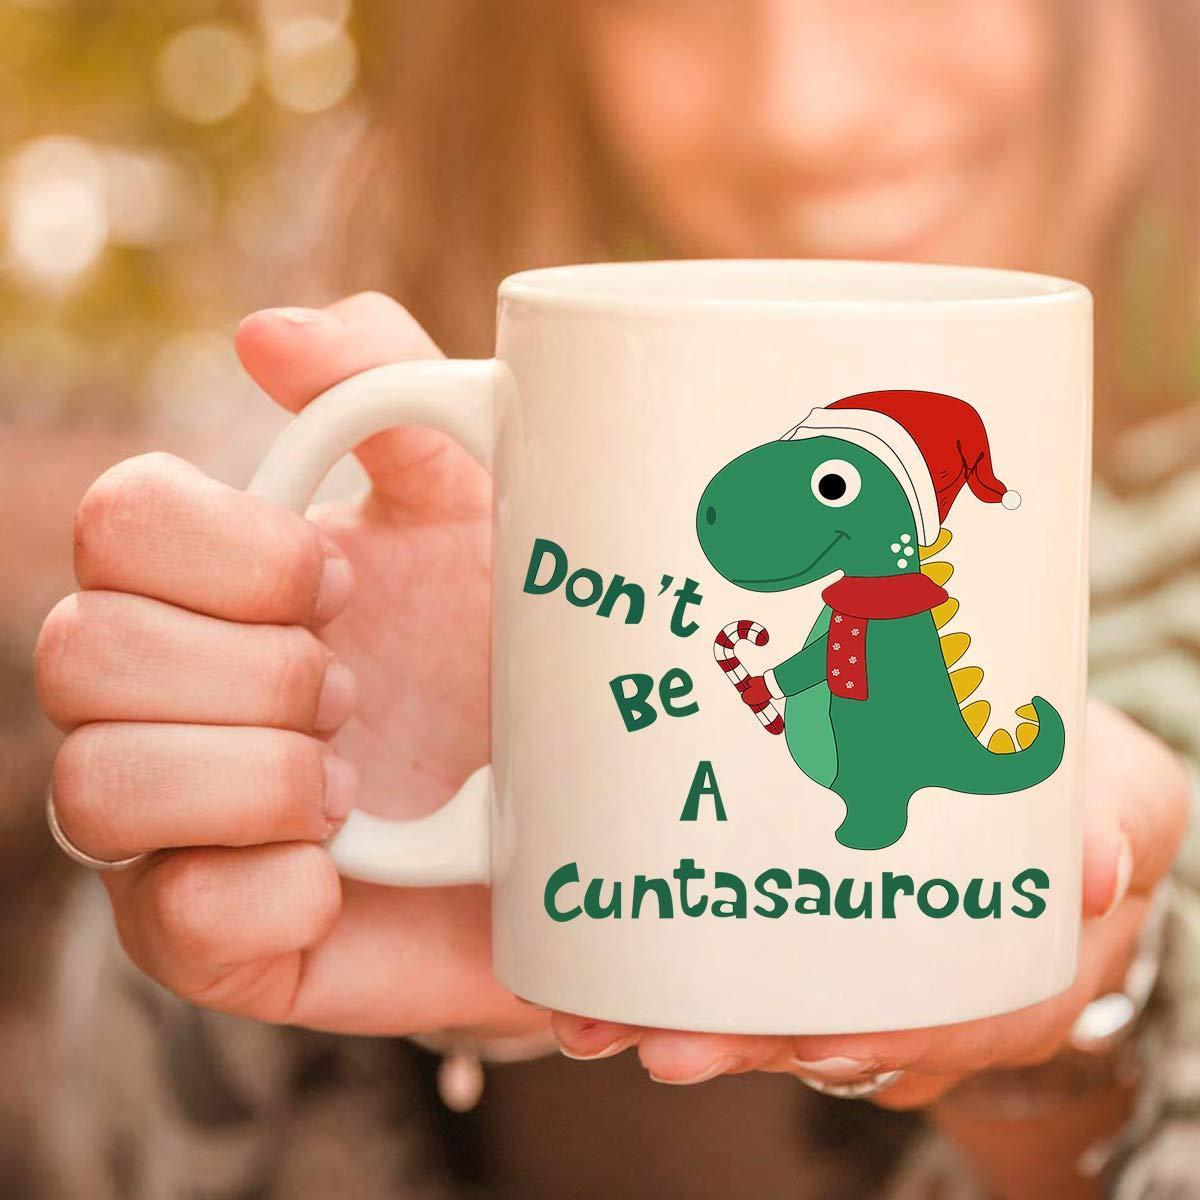 Christmas Funny Coffee Mug Funny Gift Mug For Christmas Gifts For Friends Men Women Kids Animal Lover Christmas 11oz Dropship Photo Print Mugs Photo Print On Mugs From Qiansuning88 22 72 Dhgate Com